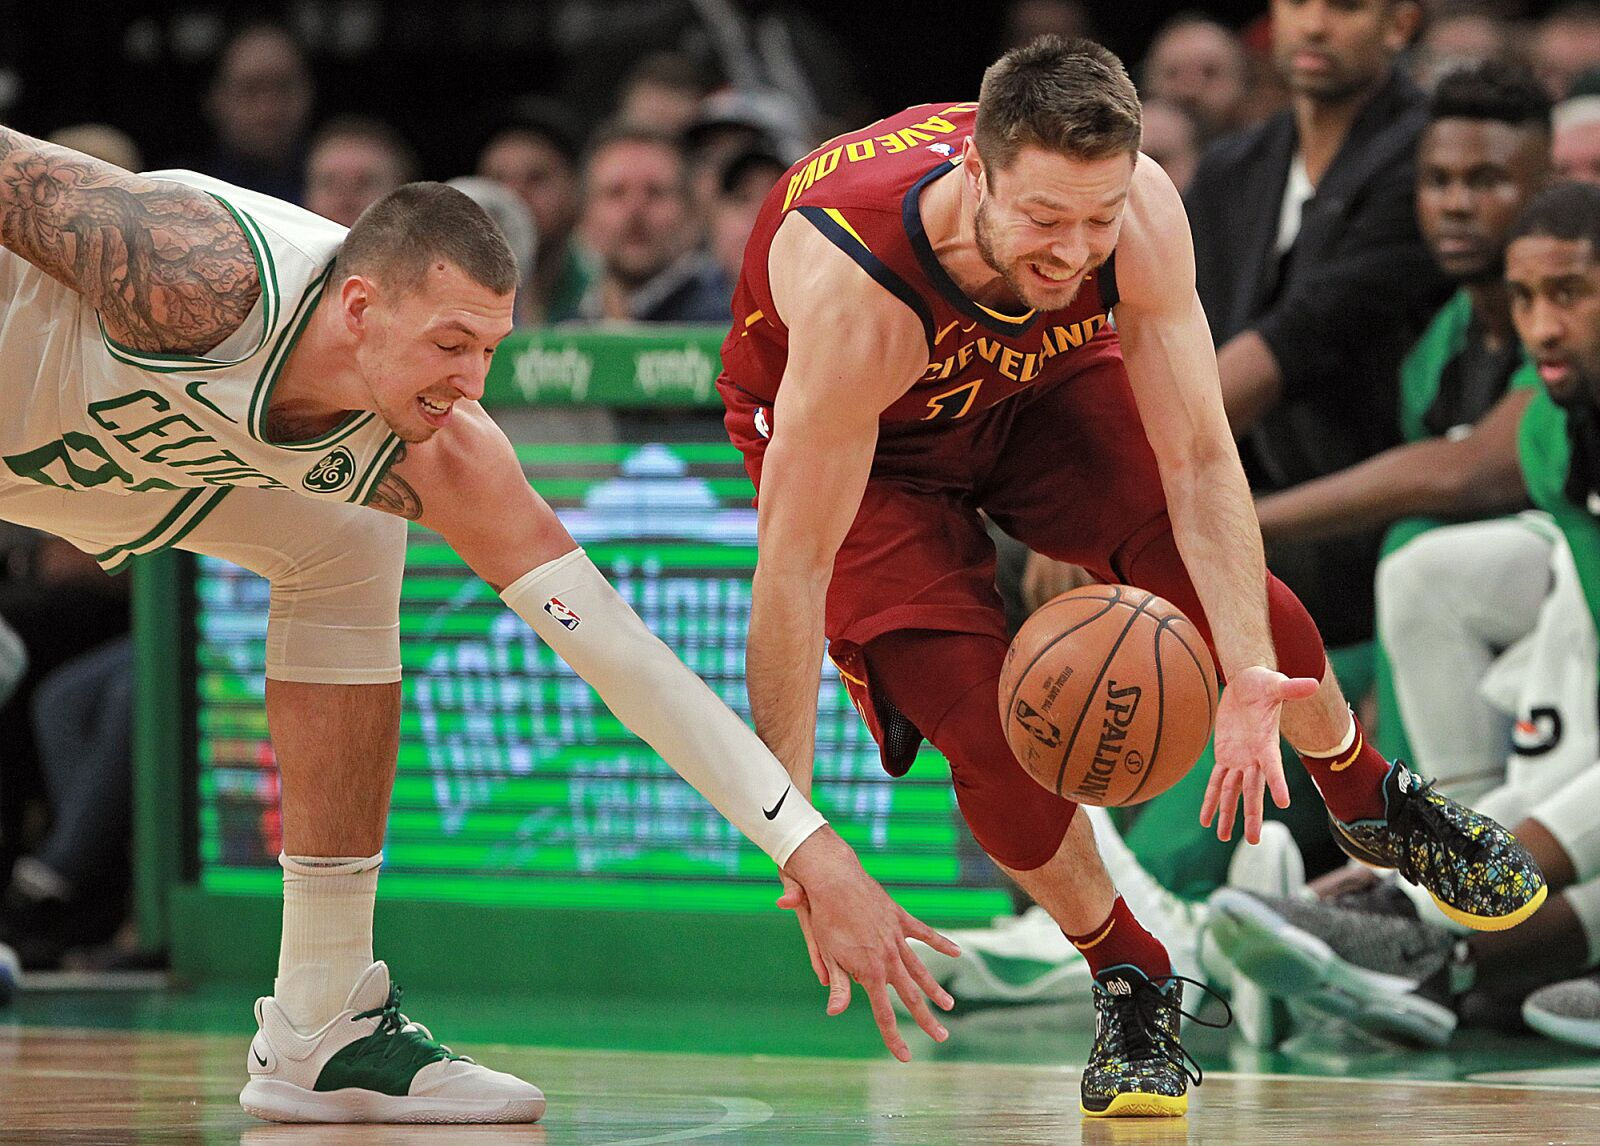 Cavs: Matthew Dellavedova's thumb injury highlights why he should come off bench when healthy